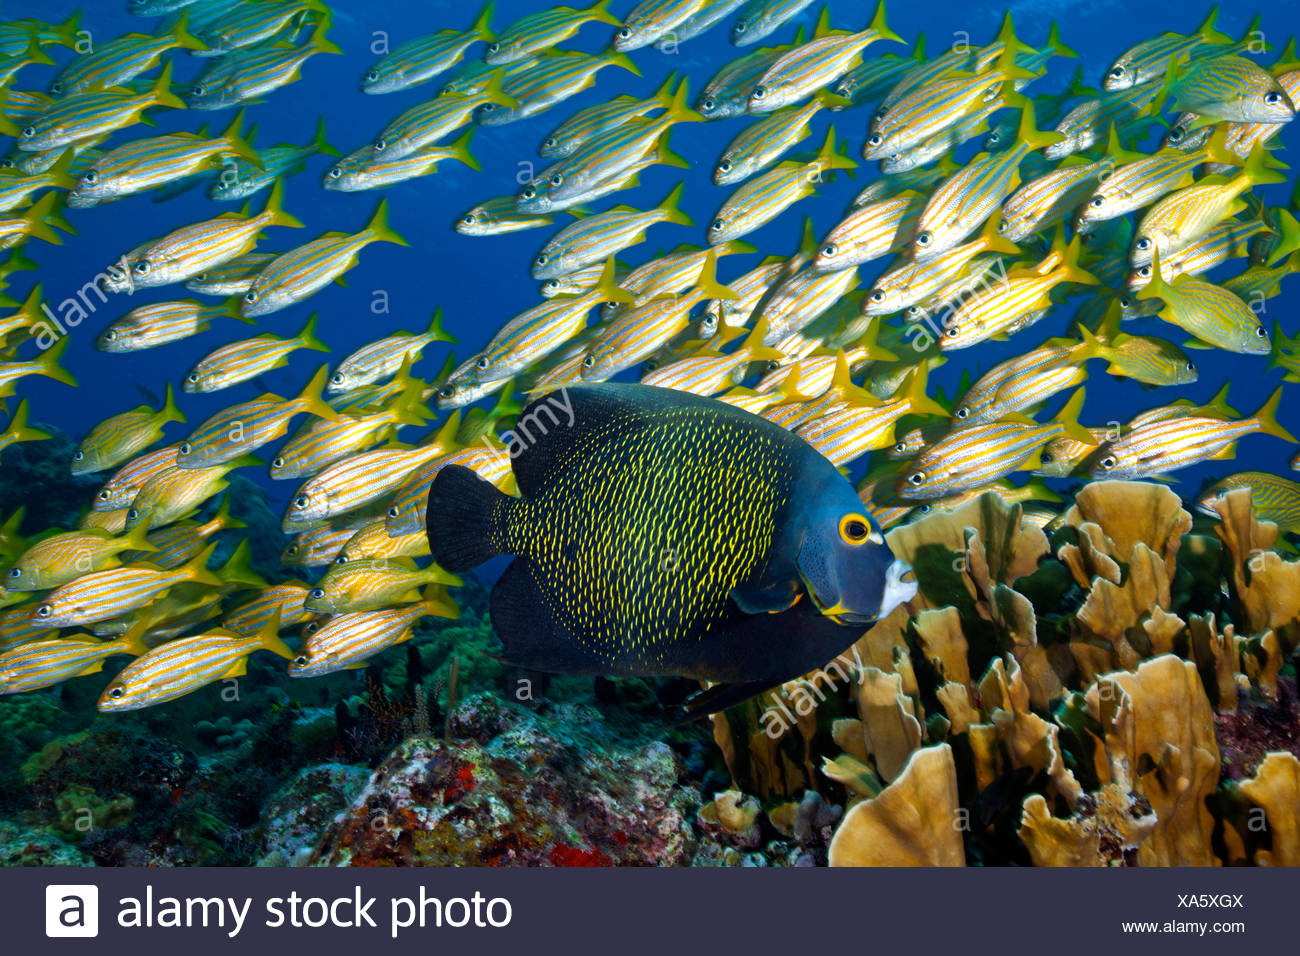 French Angelfish (Pomacanthus paru) with a Smallmouth Grunt (Haemulon chrysargyreum) and Blade Fire Coral (Millepora complanata). Cancun National Park, Caribbean Sea, Mexico. - Stock Image